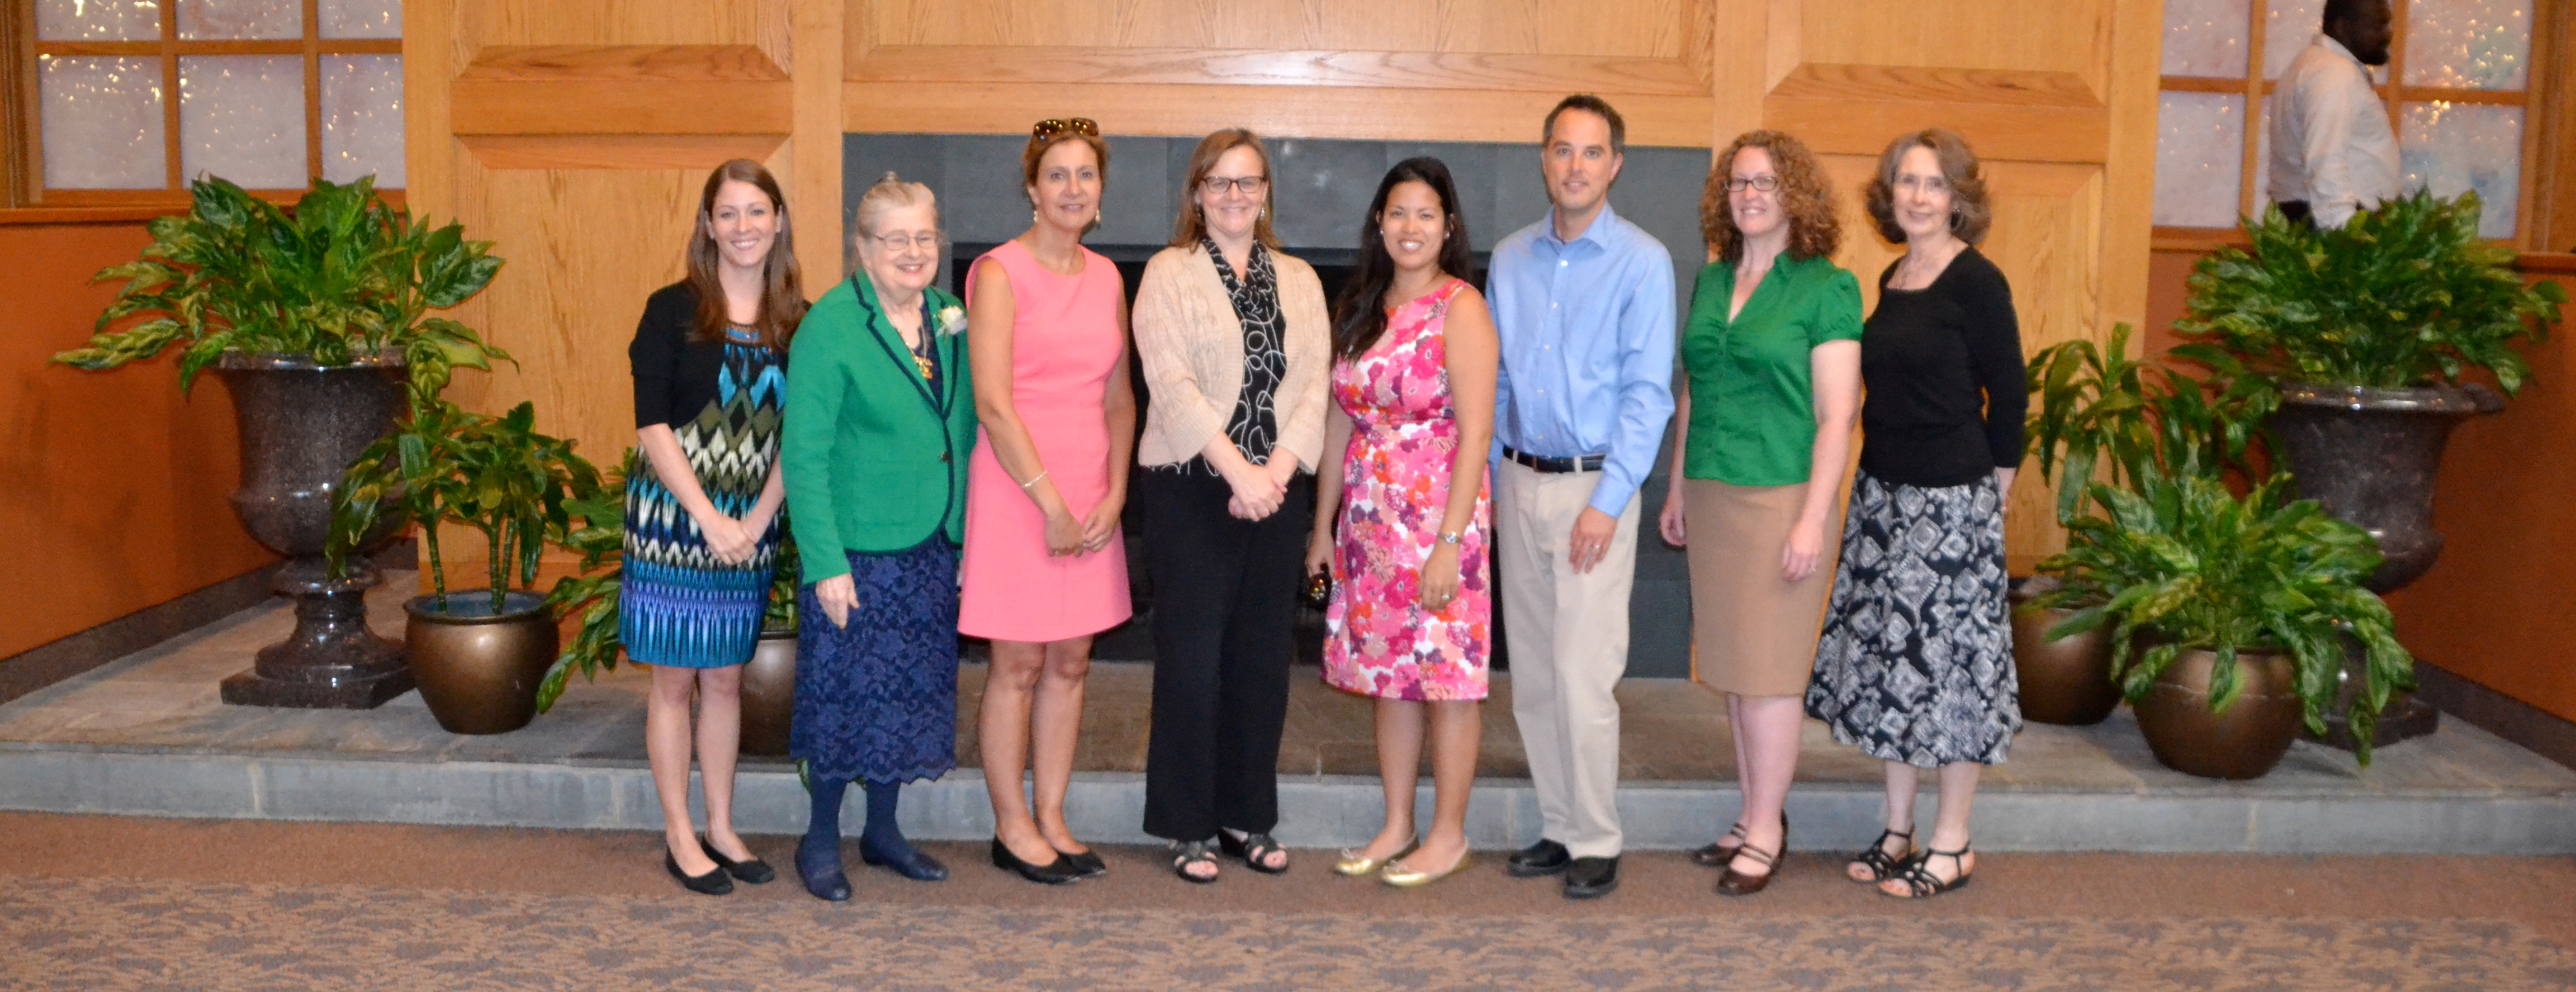 University of Delaware College of Education and Human Development faculty and staff group picture.